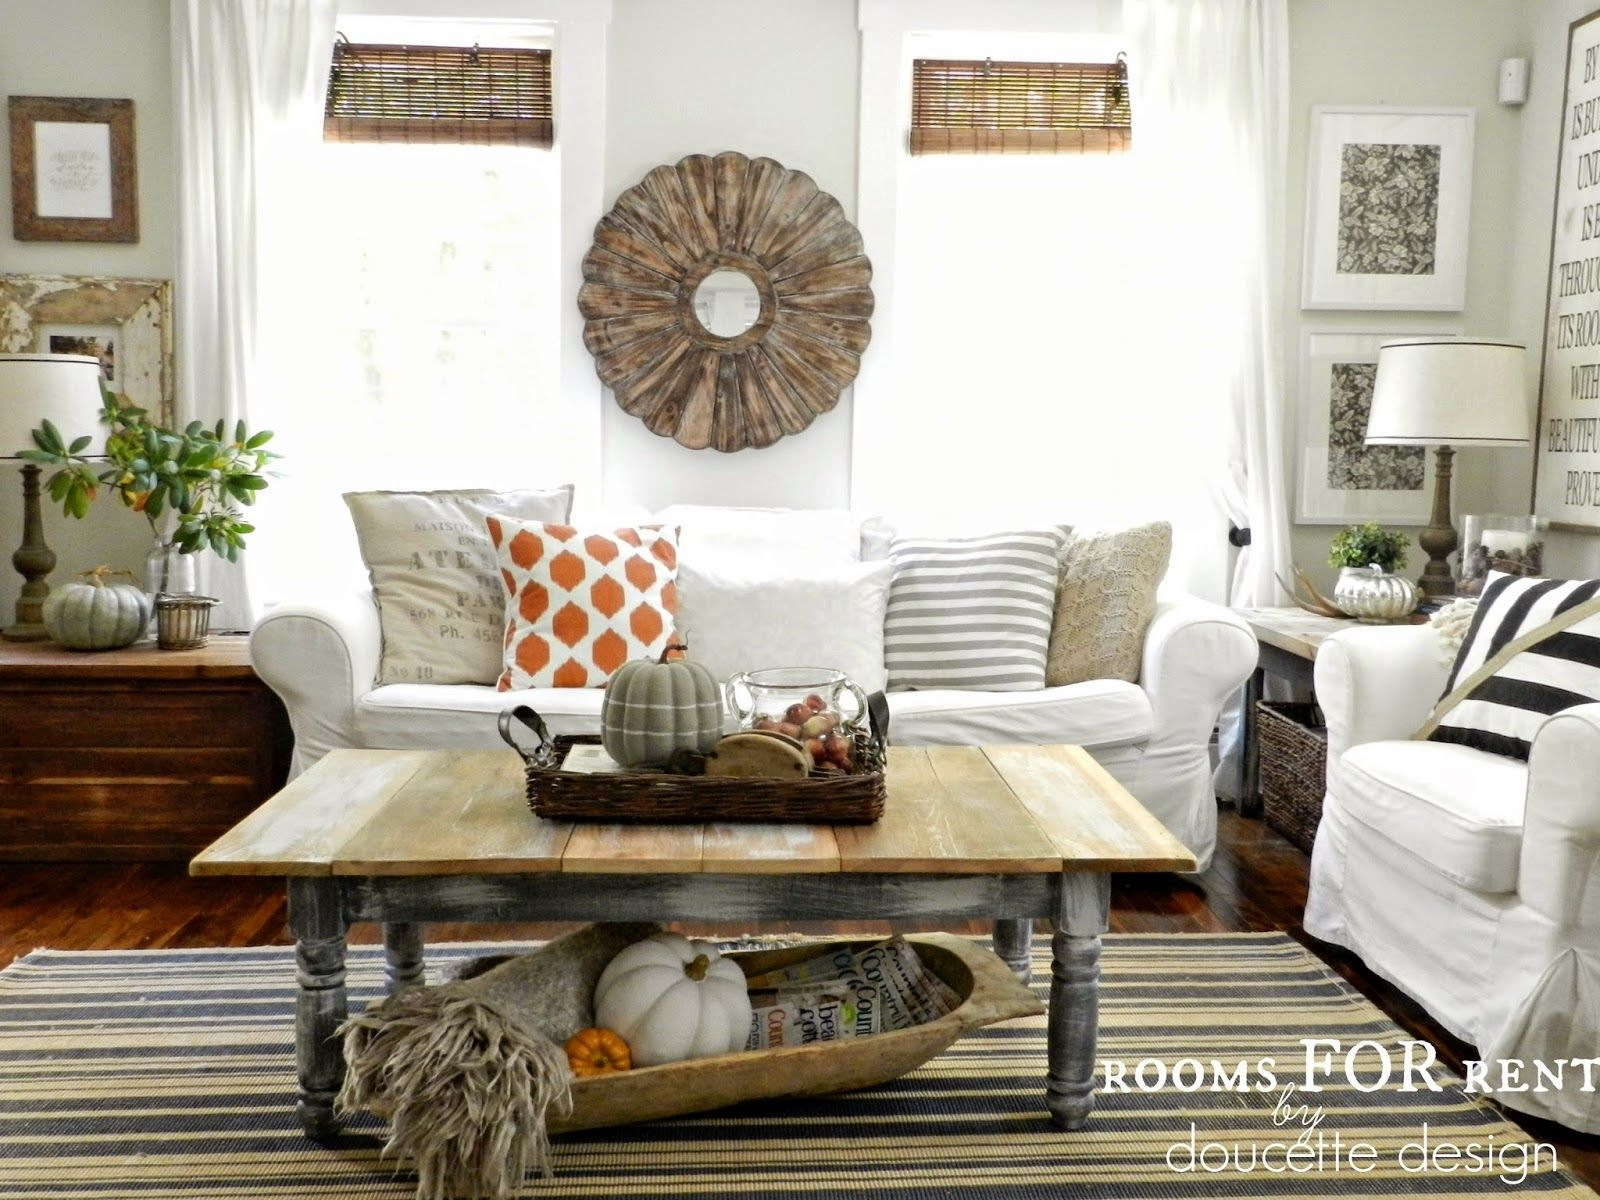 ~rooms FOR rent~: Fall Home Tour {2014}